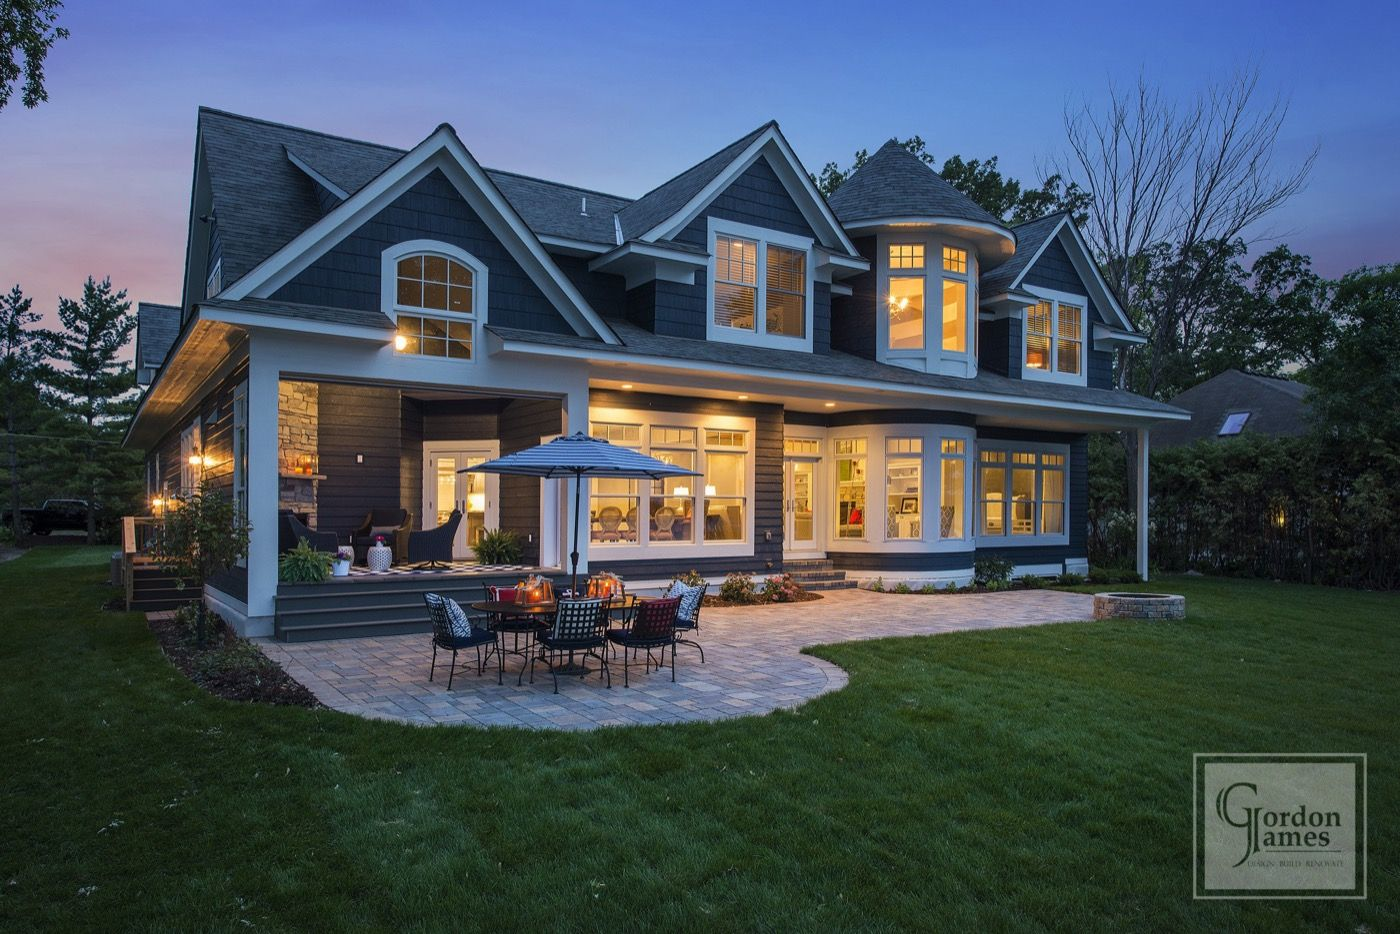 This 6 000 Square Foot Craftsman Style Lakefront Home Overlooking Crystal Bay In Minnetonka Beach Minn Lakefront Homes House And Home Magazine New House Plans